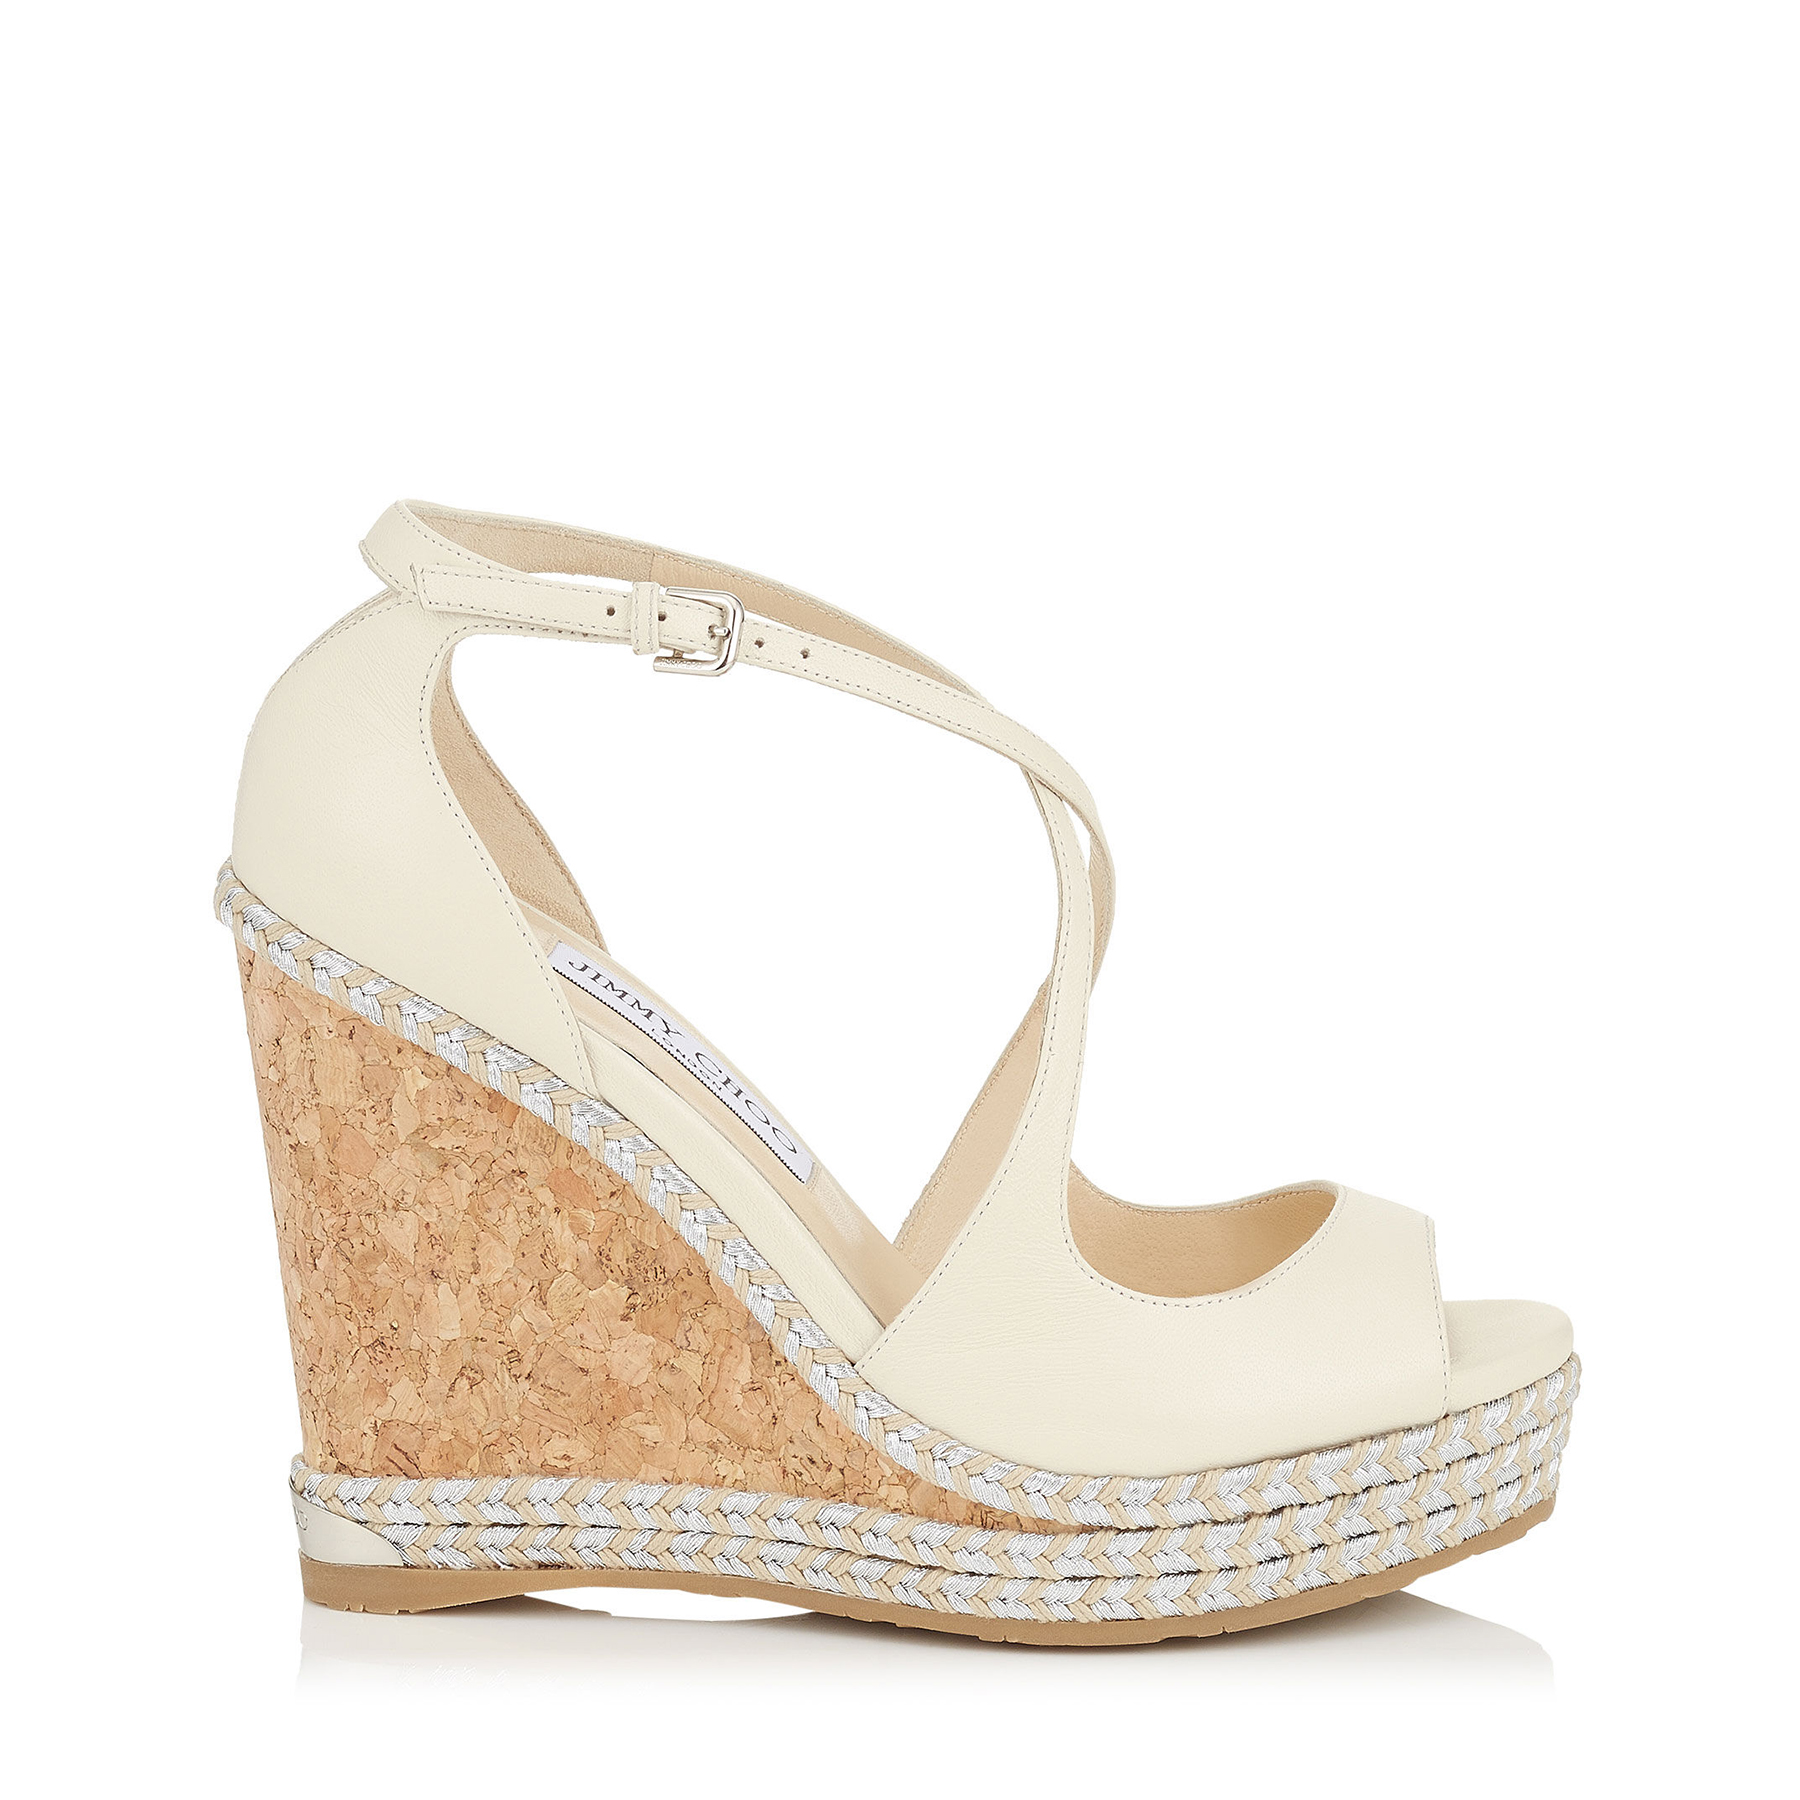 DAKOTA 120 Off White Wedge with Tonal Metallic Raffia by Jimmy Choo